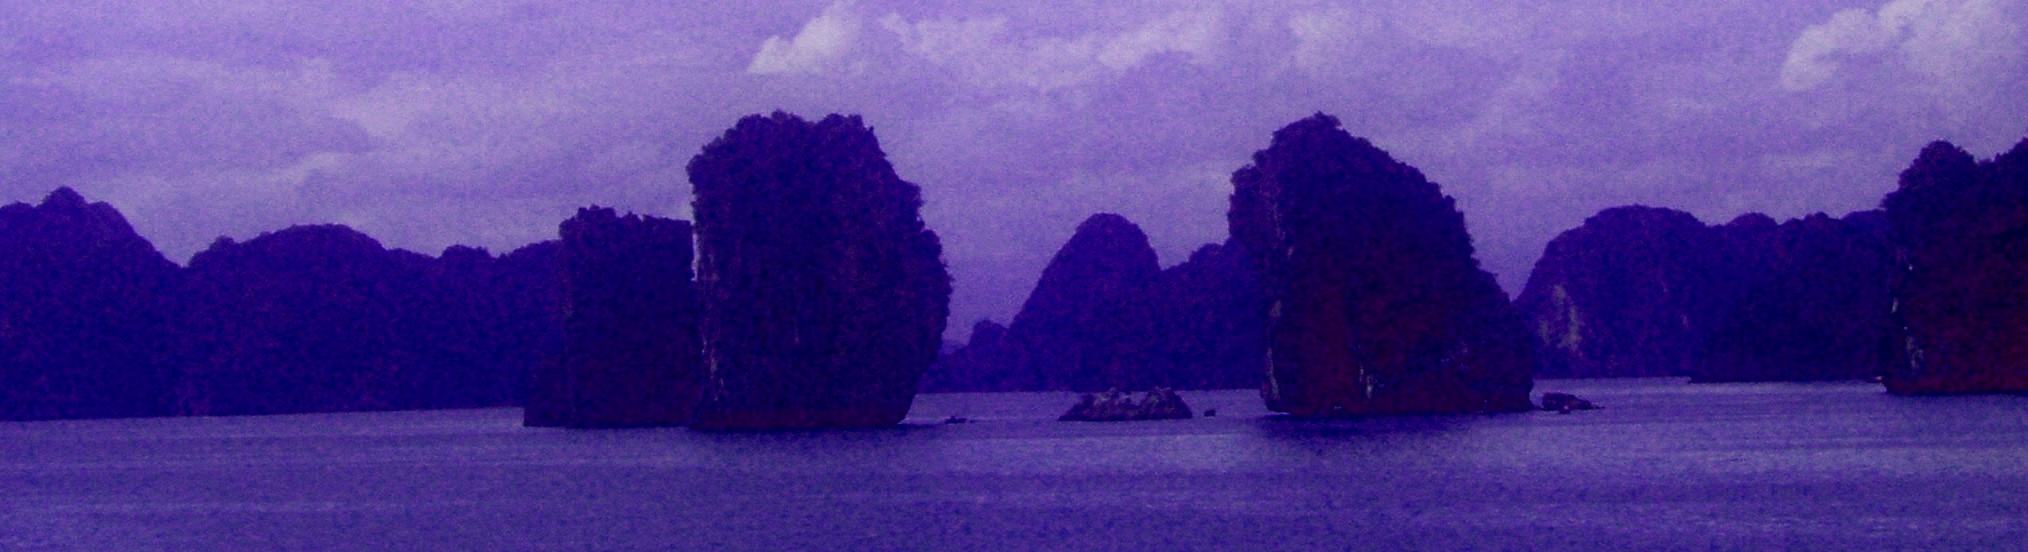 weird halong bay.JPG